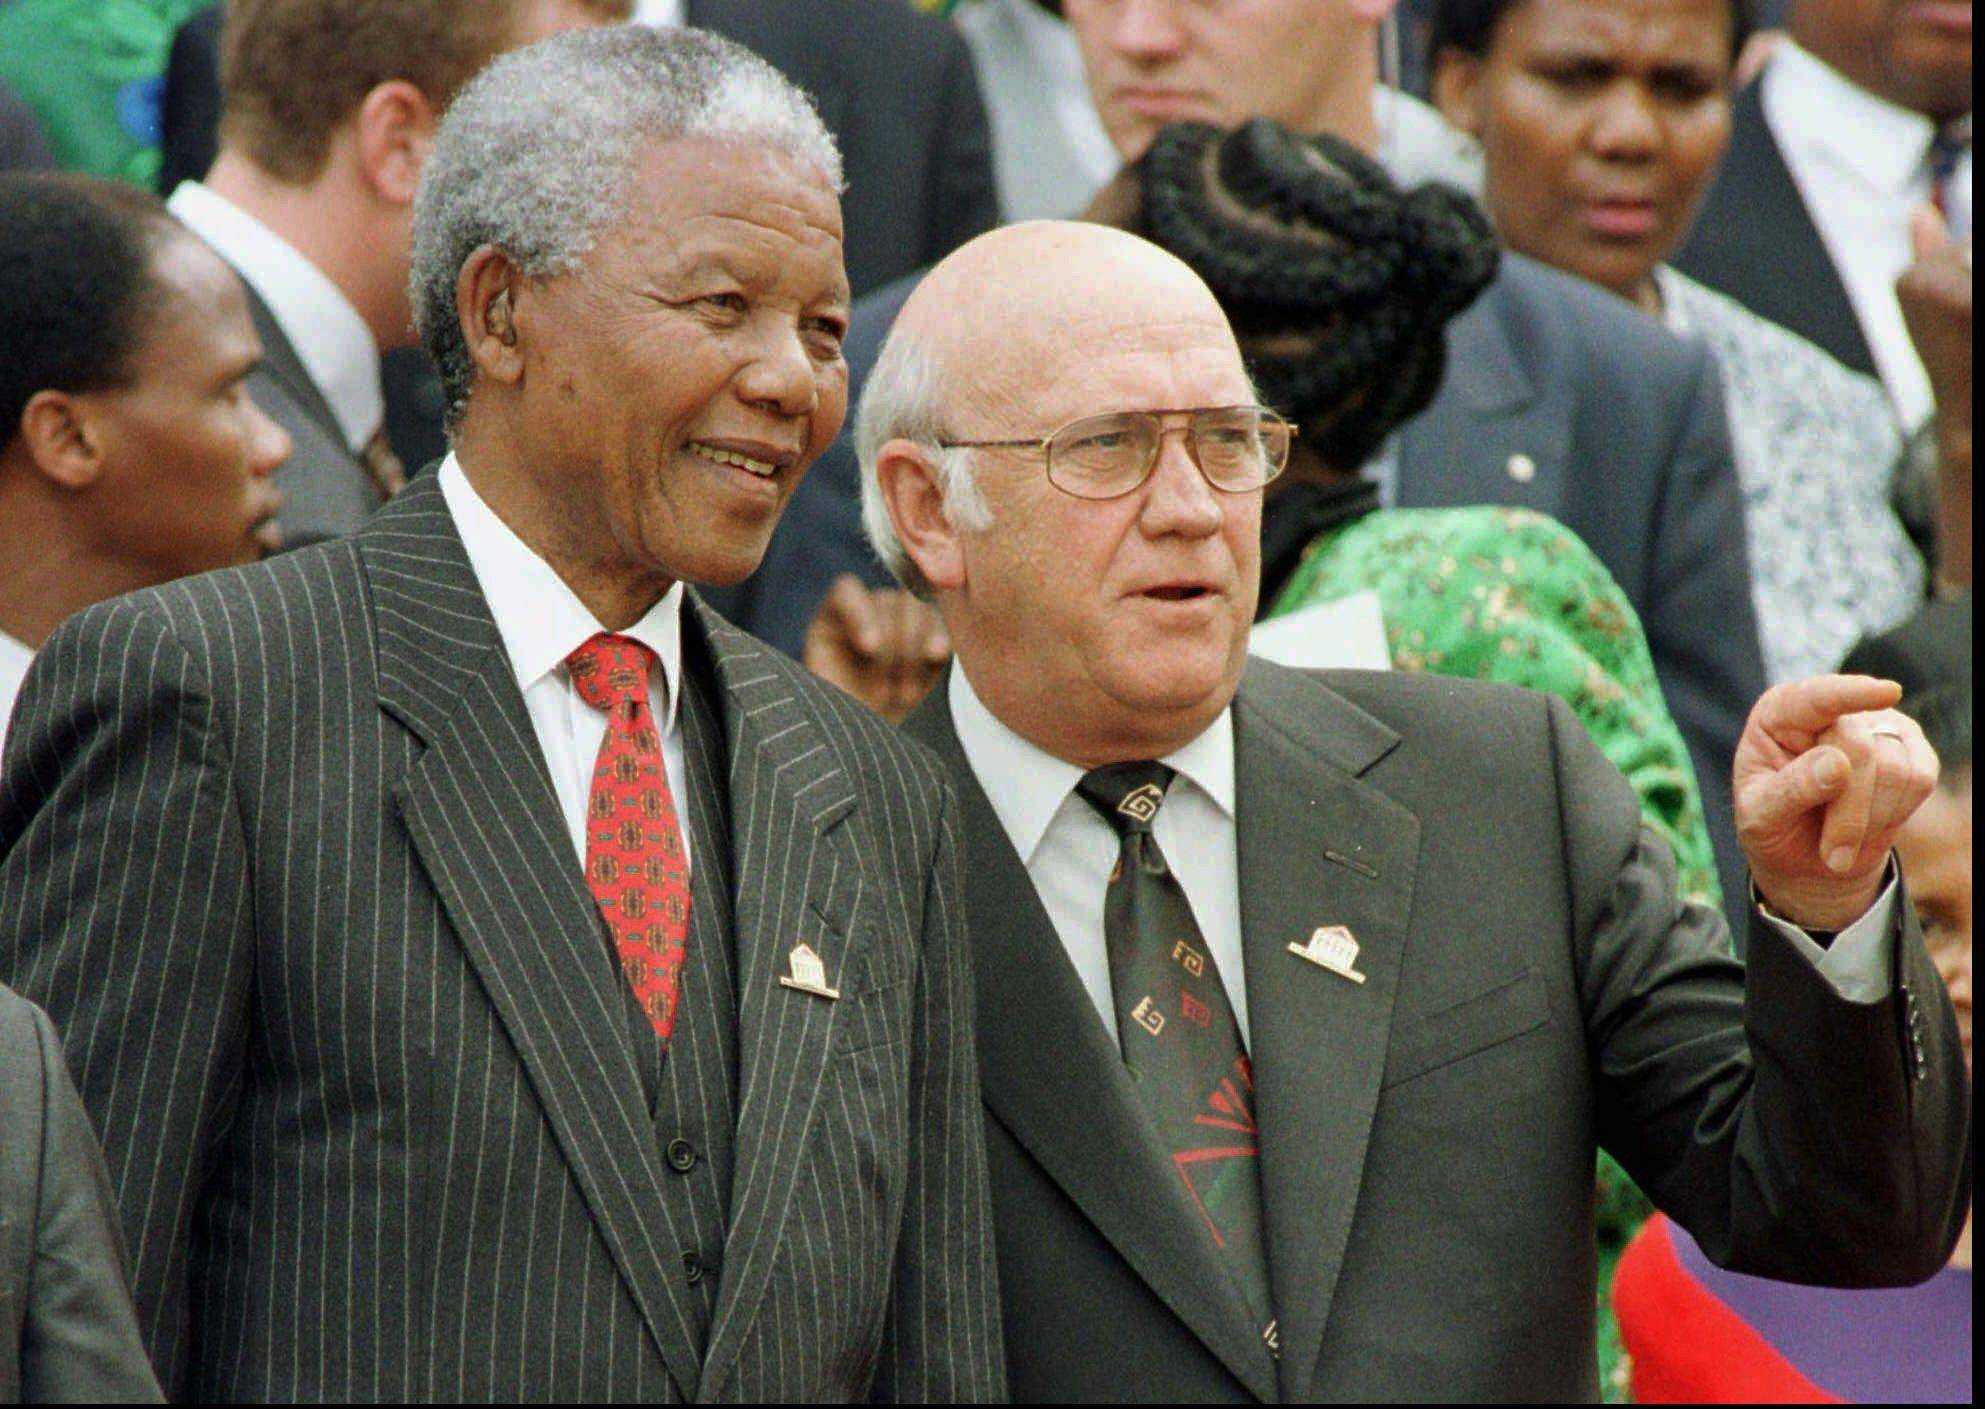 In this 1996 photo, South African President Nelson Mandela, left, and Deputy President F.W. de Klerk chat outside Parliament after the approval of South Africa's new constitution. de Klerk, the last leader of the apartheid era and a co-recipient of the 1993 Nobel Peace Prize with Nelson Mandela, has suffered dizziness and will be fitted with a pacemaker, Tuesday June 2, 2013, to help his heart function.